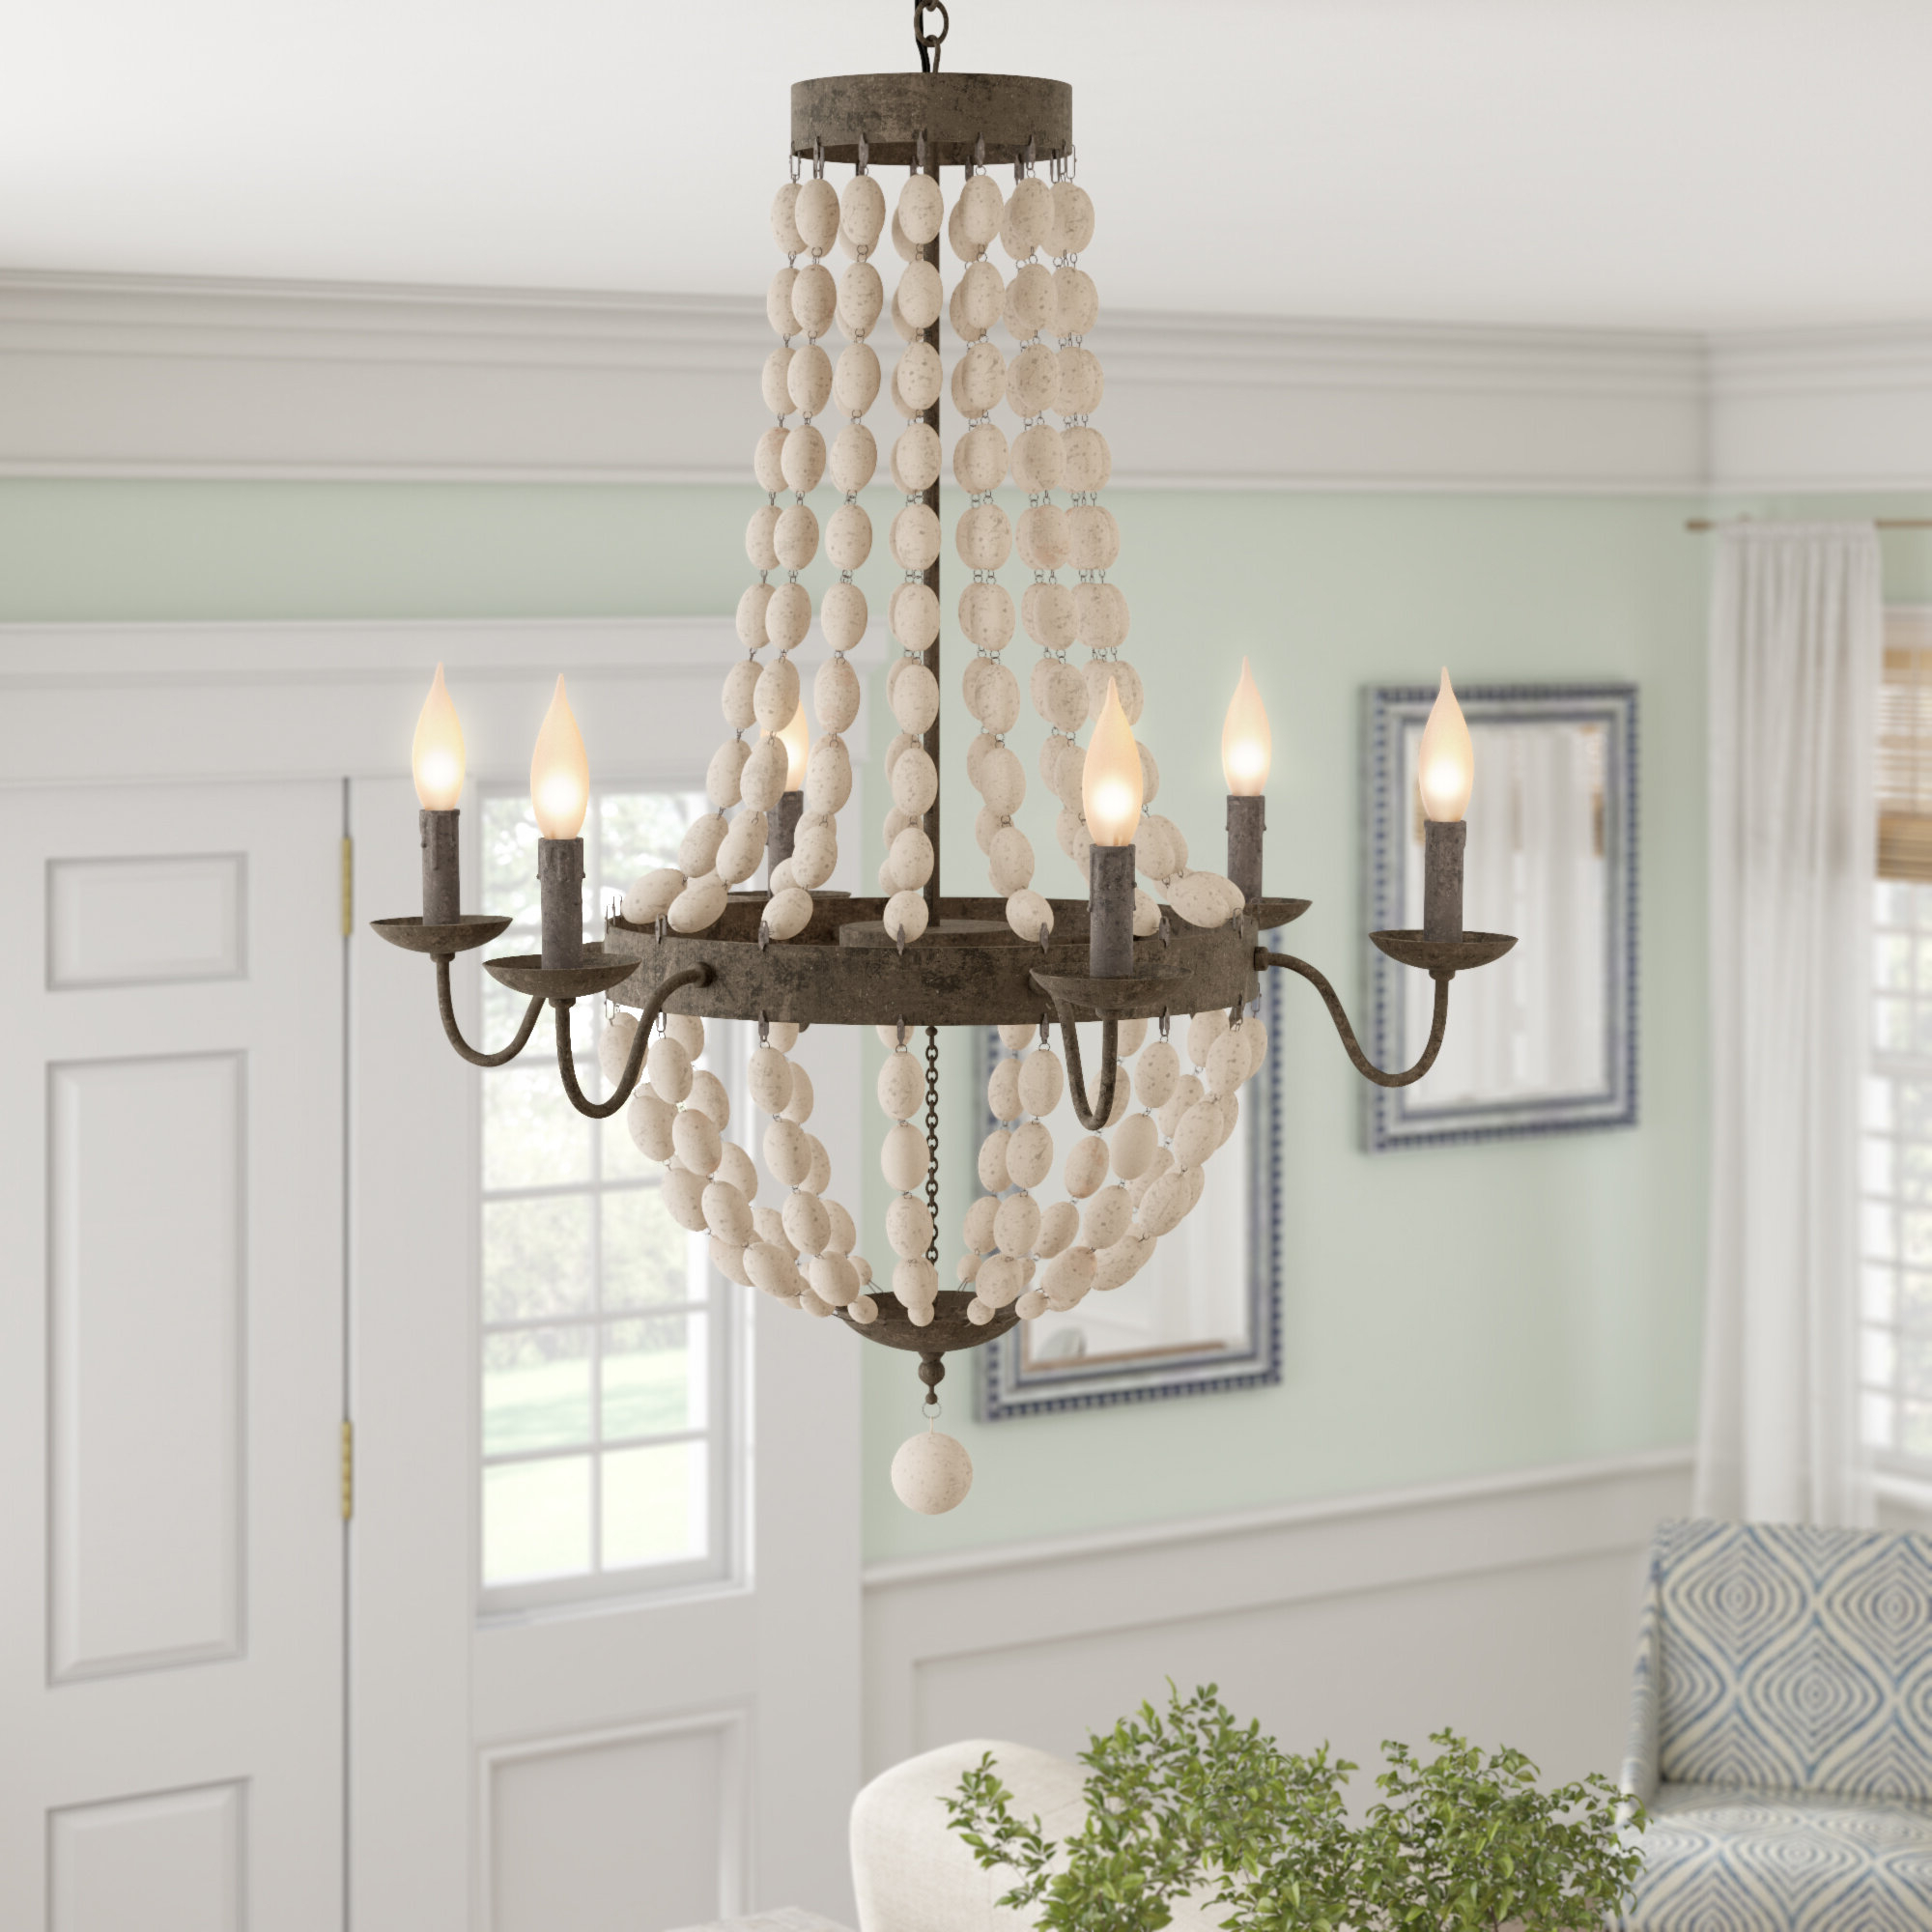 Latest Duron 5 Light Empire Chandeliers In Bargas 6 Light Empire Chandelier (View 6 of 25)